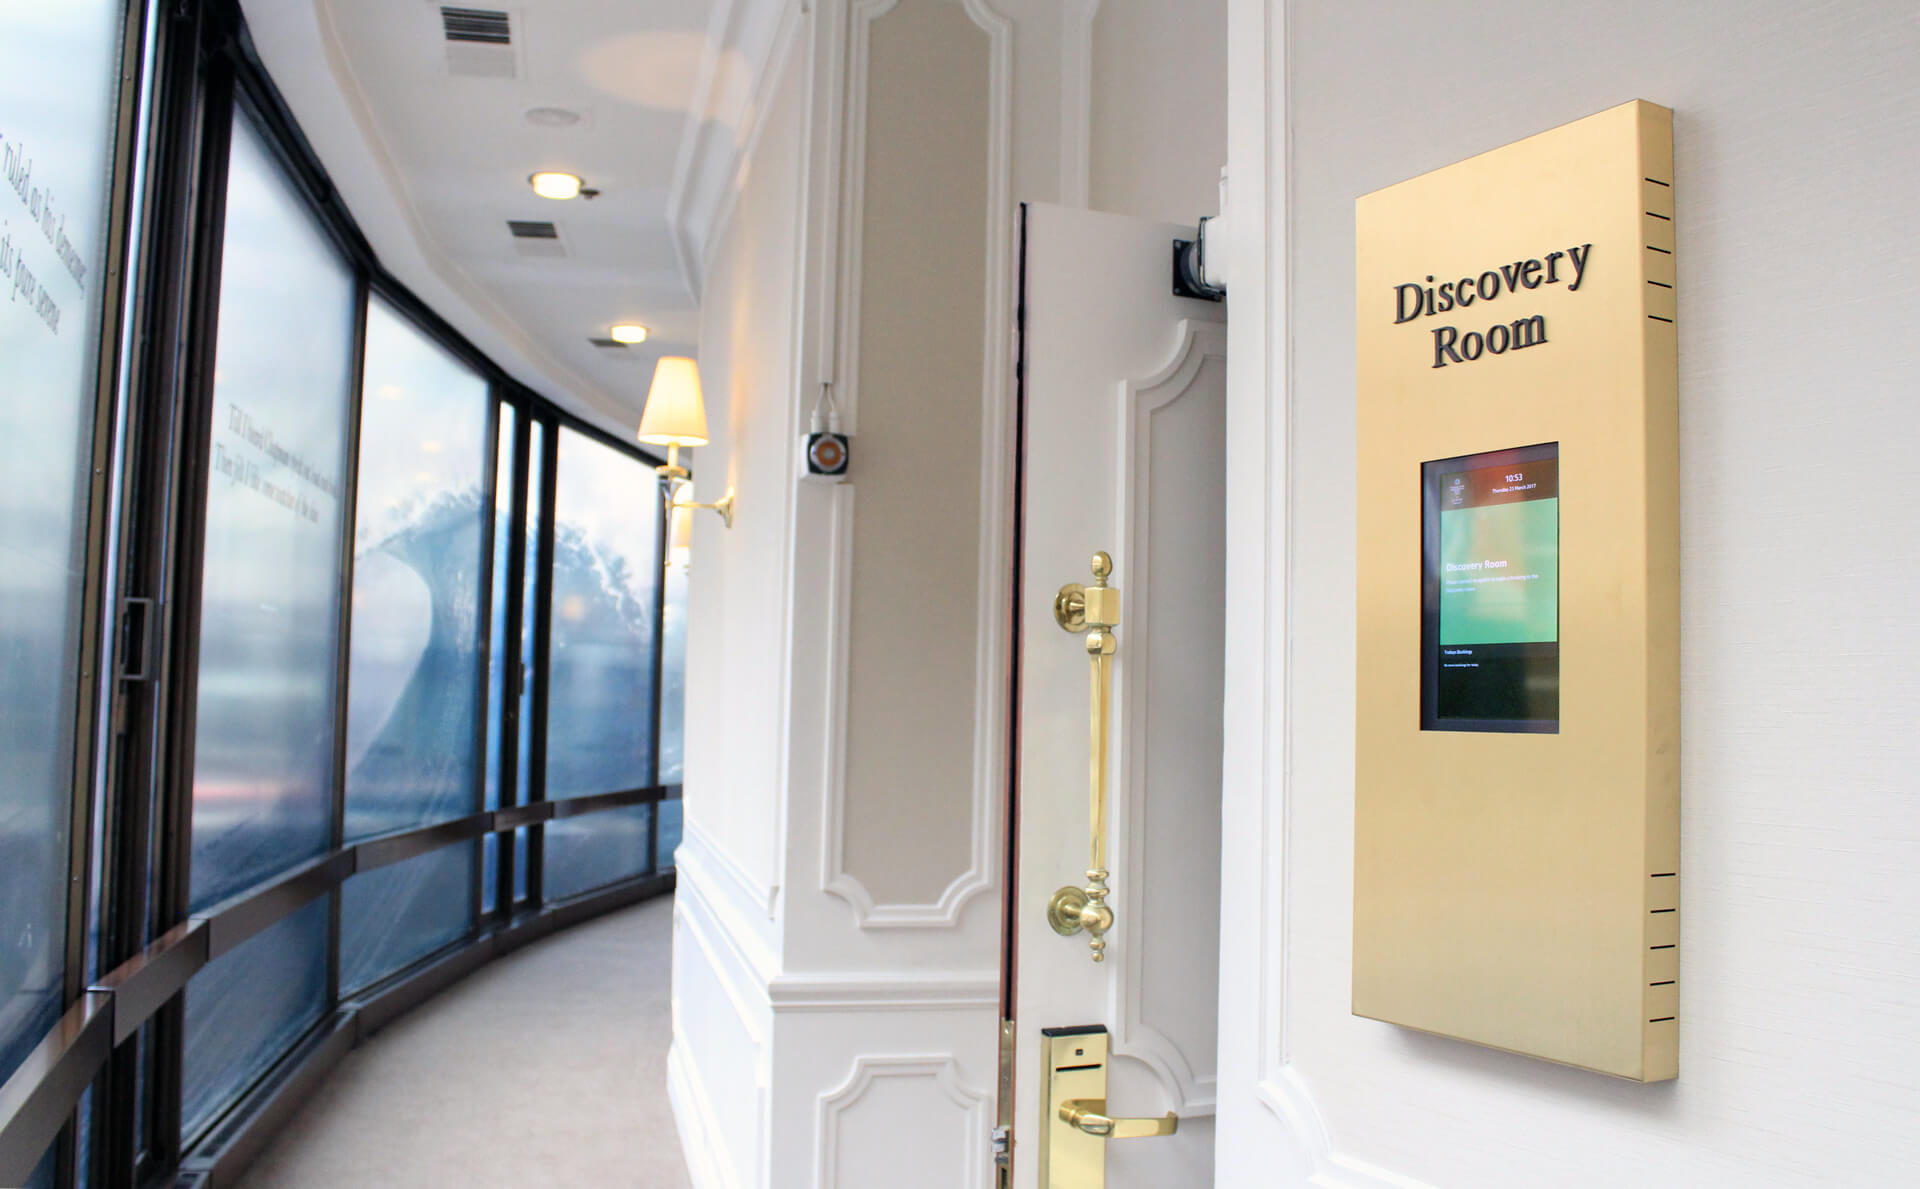 Eclipse Digital Media Digital Signage Project The Park Hotel Knightsbridge room booking